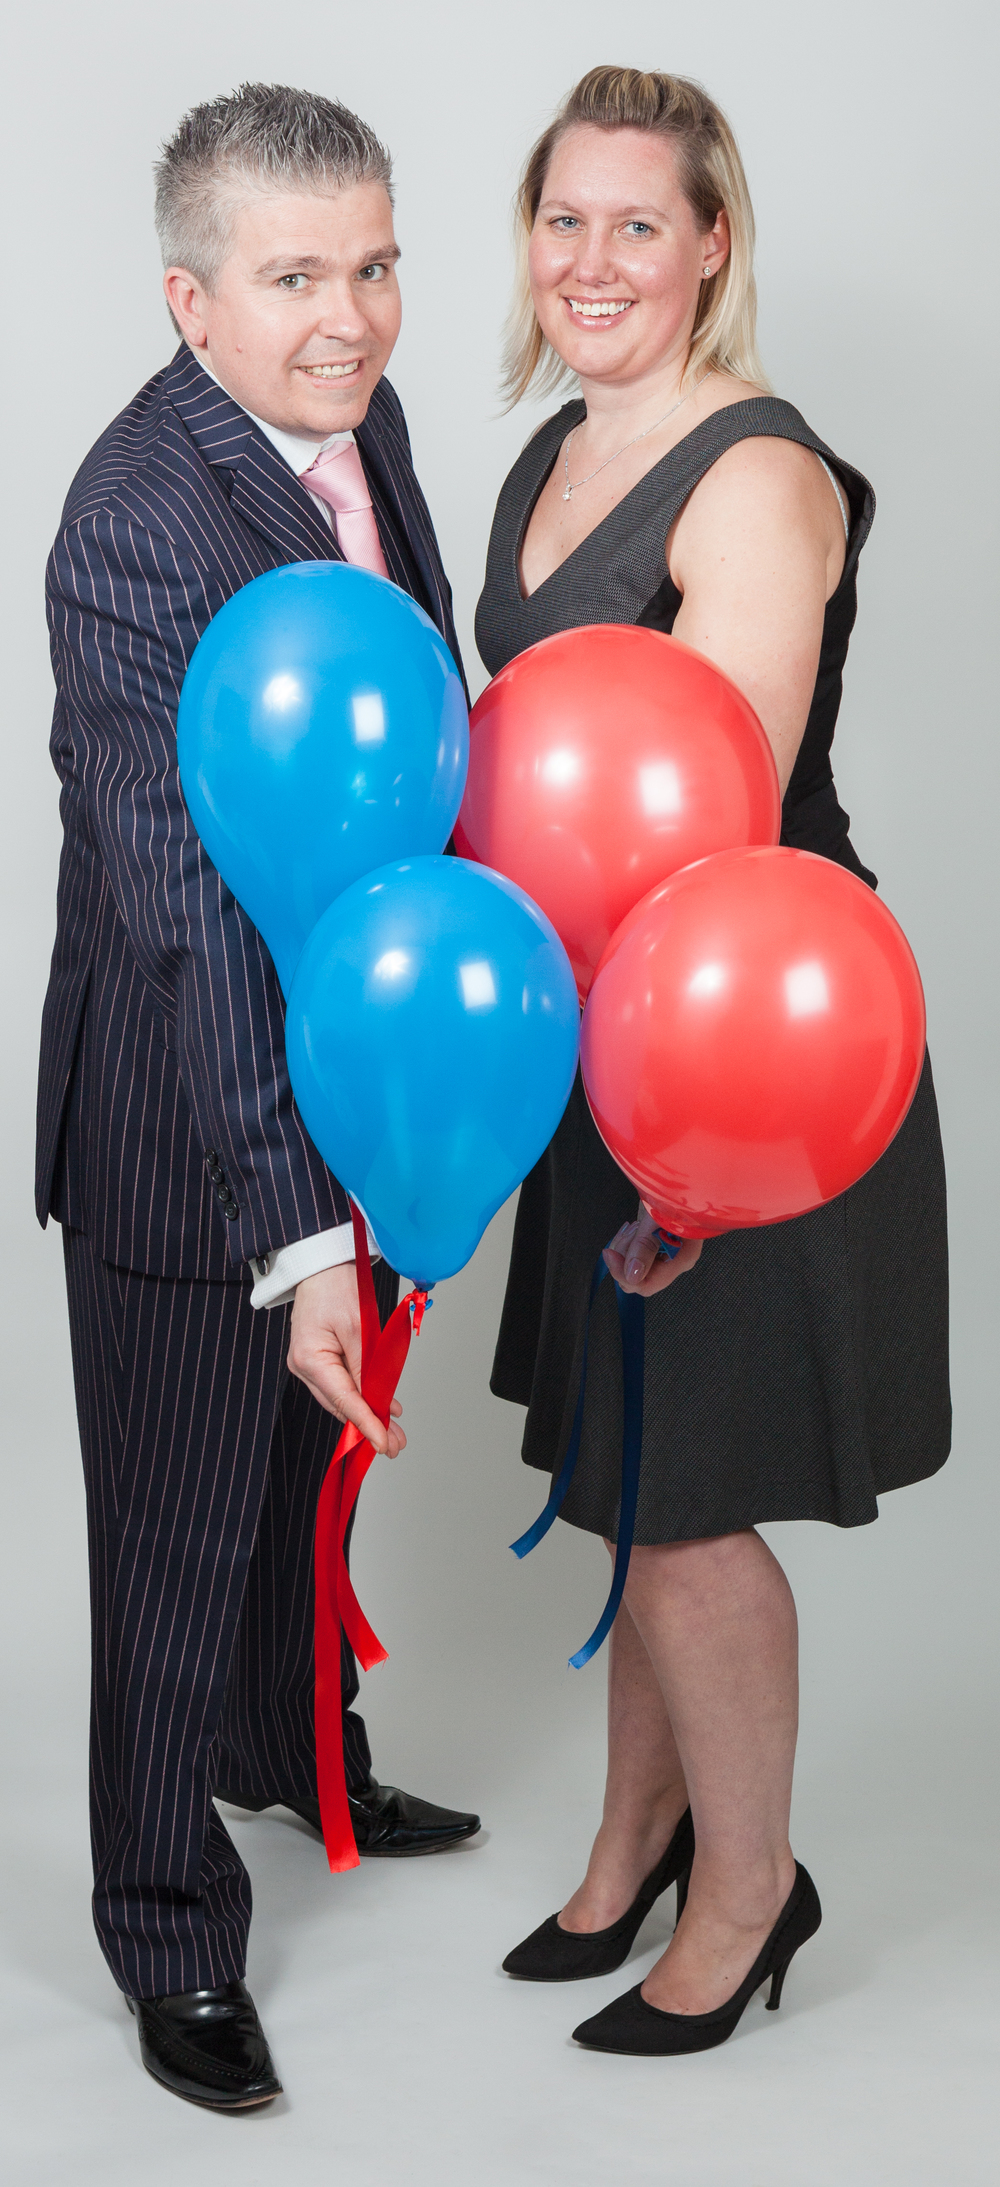 Jo and Dave - Suits and Ballons_SimbocLtd_7006.jpg